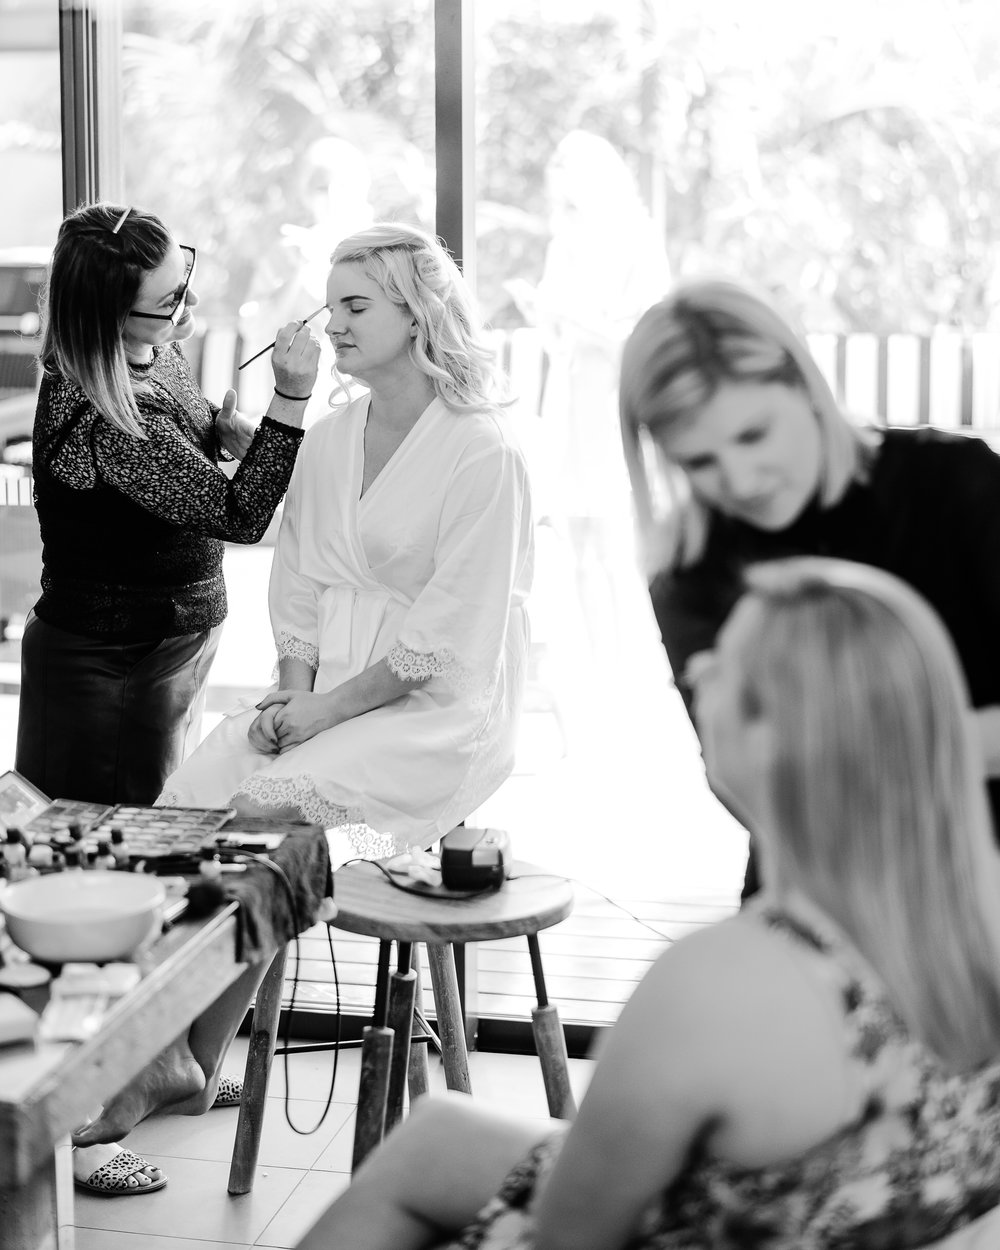 Justin_And_Jim_Photography_Byron_Bay_Wedding005.JPG